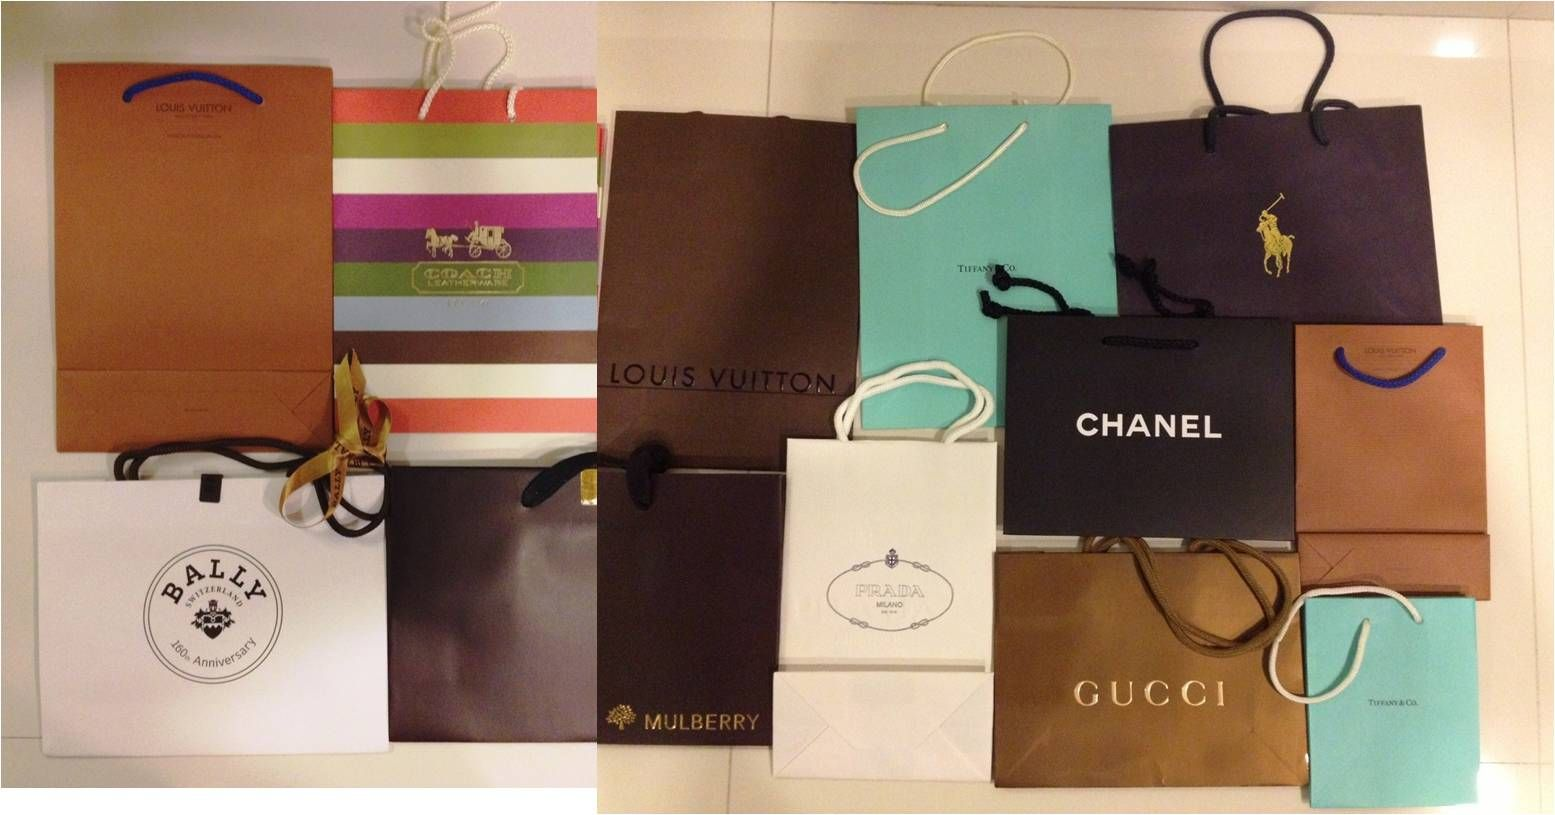 Branded paper bags for sale